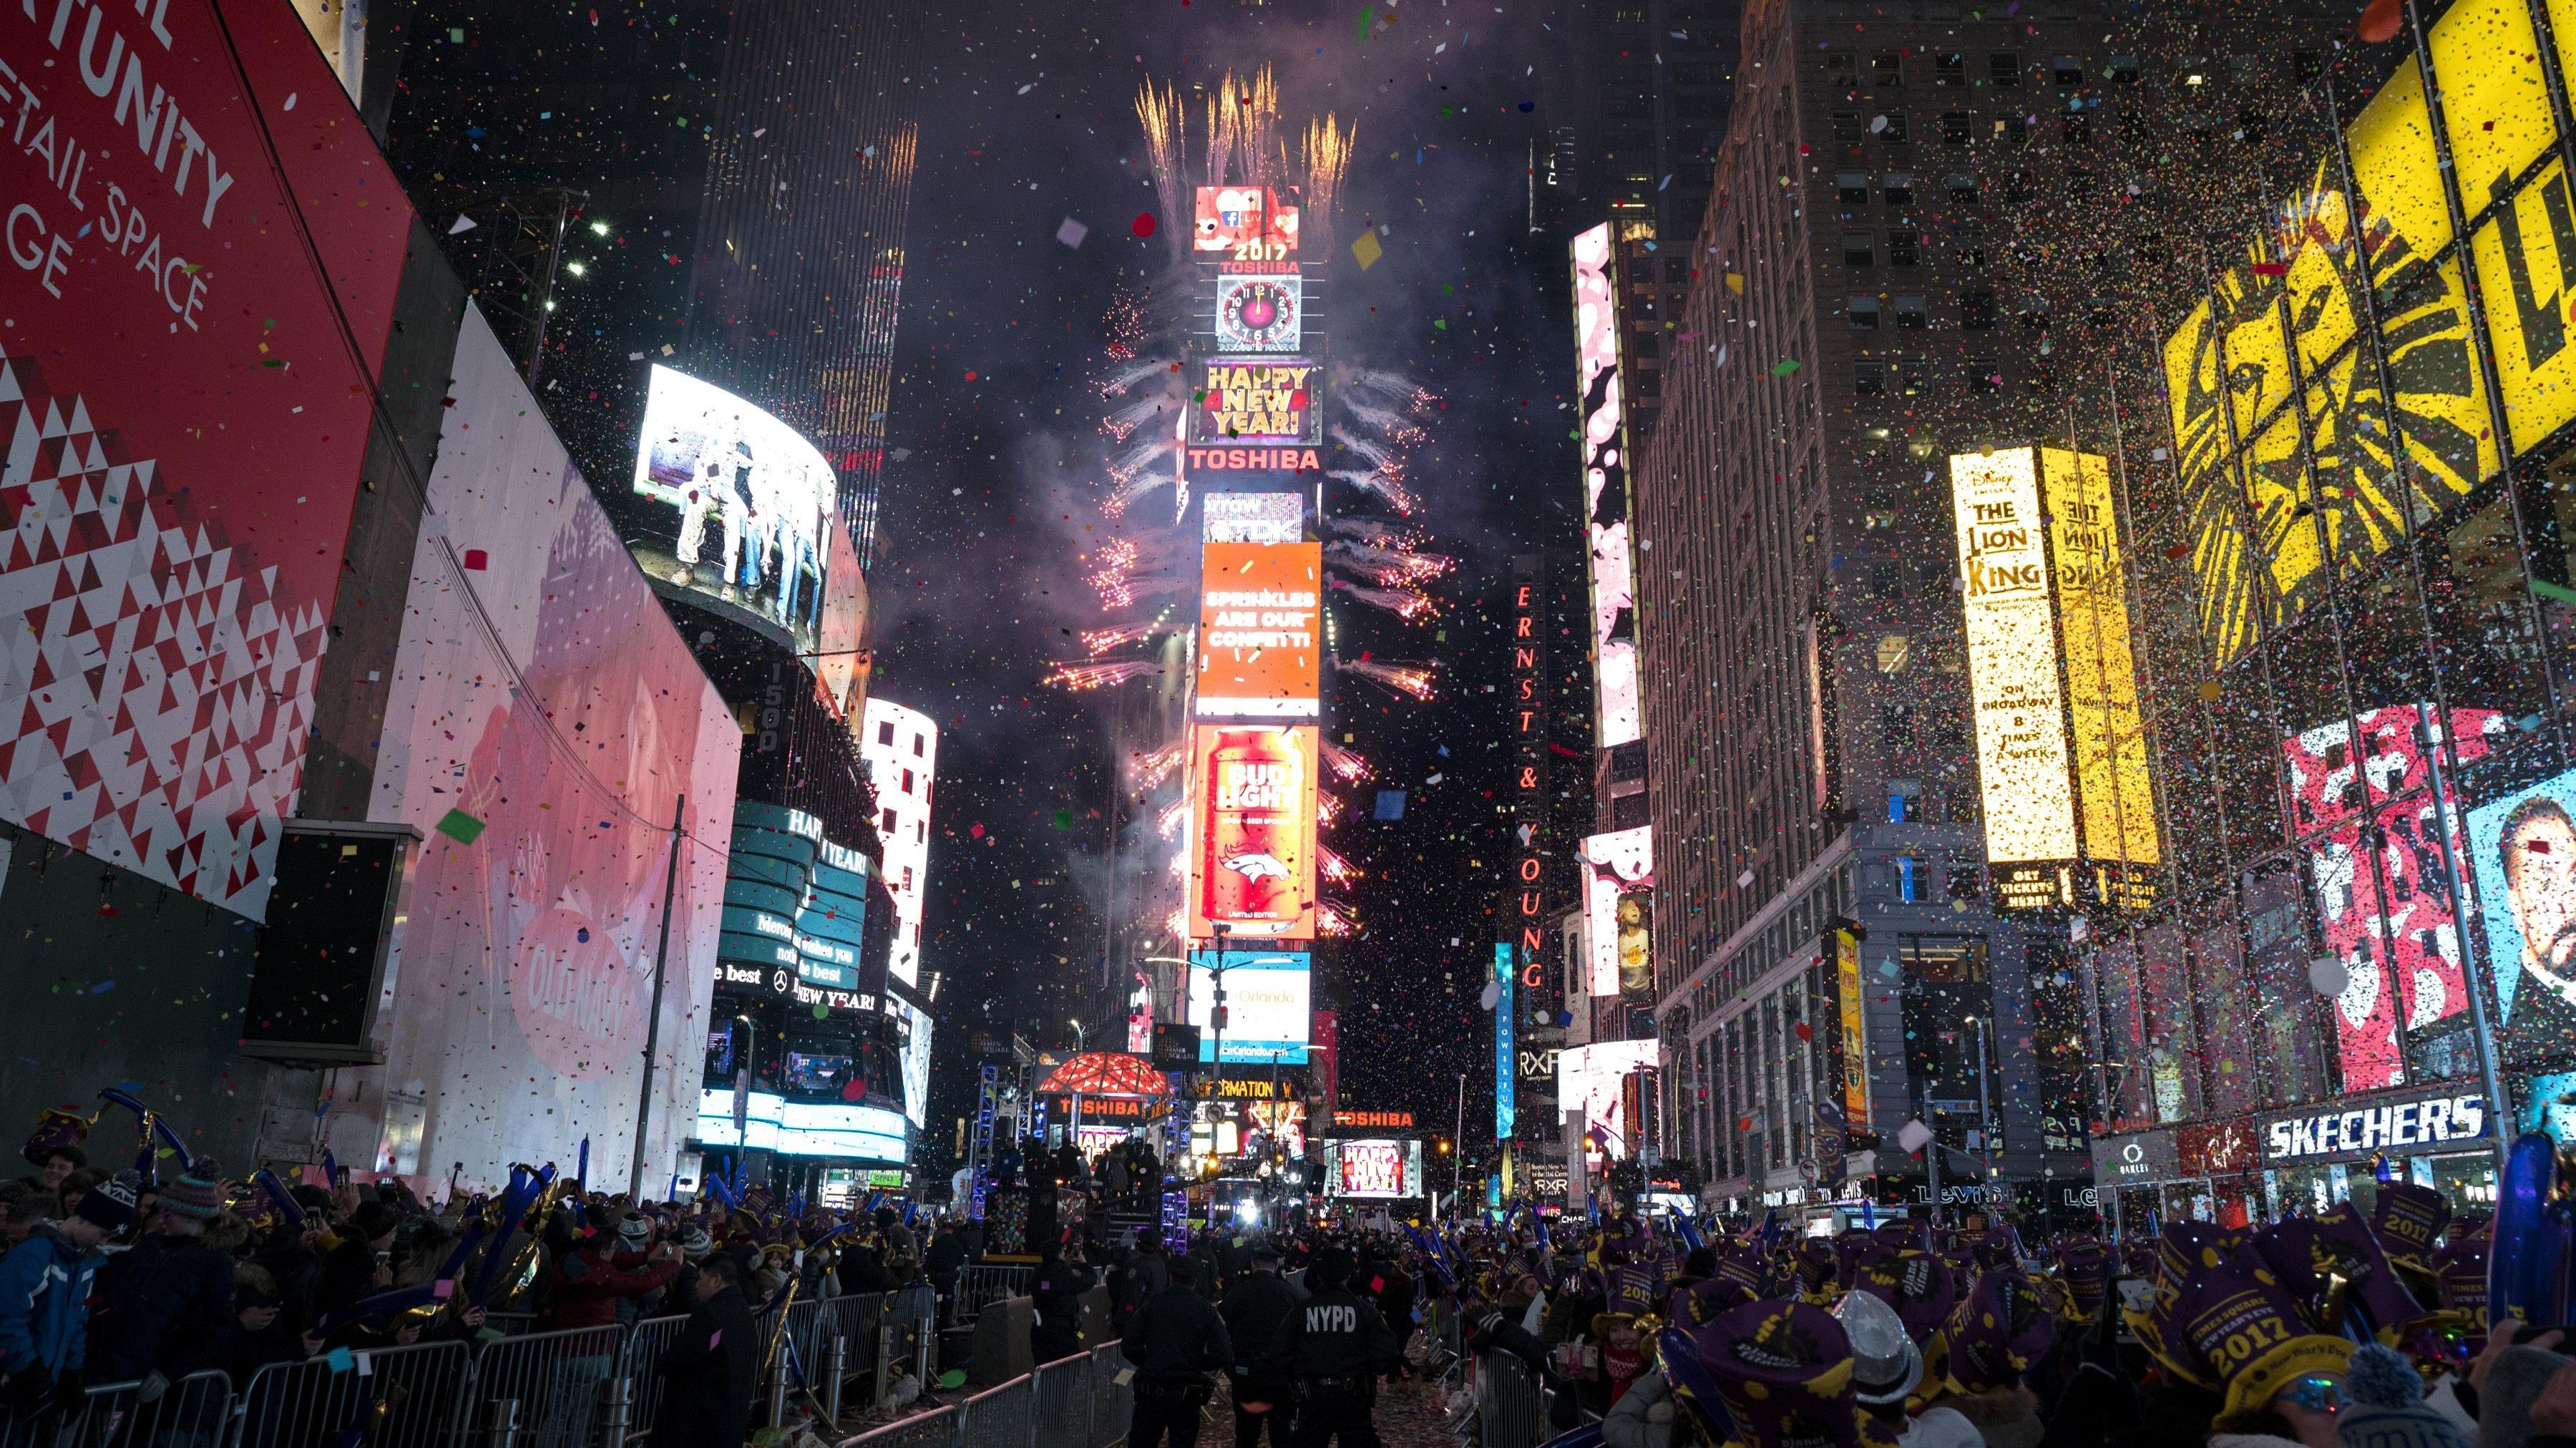 How to Stream Times Square New Year's Eve 2018 Celebration ...